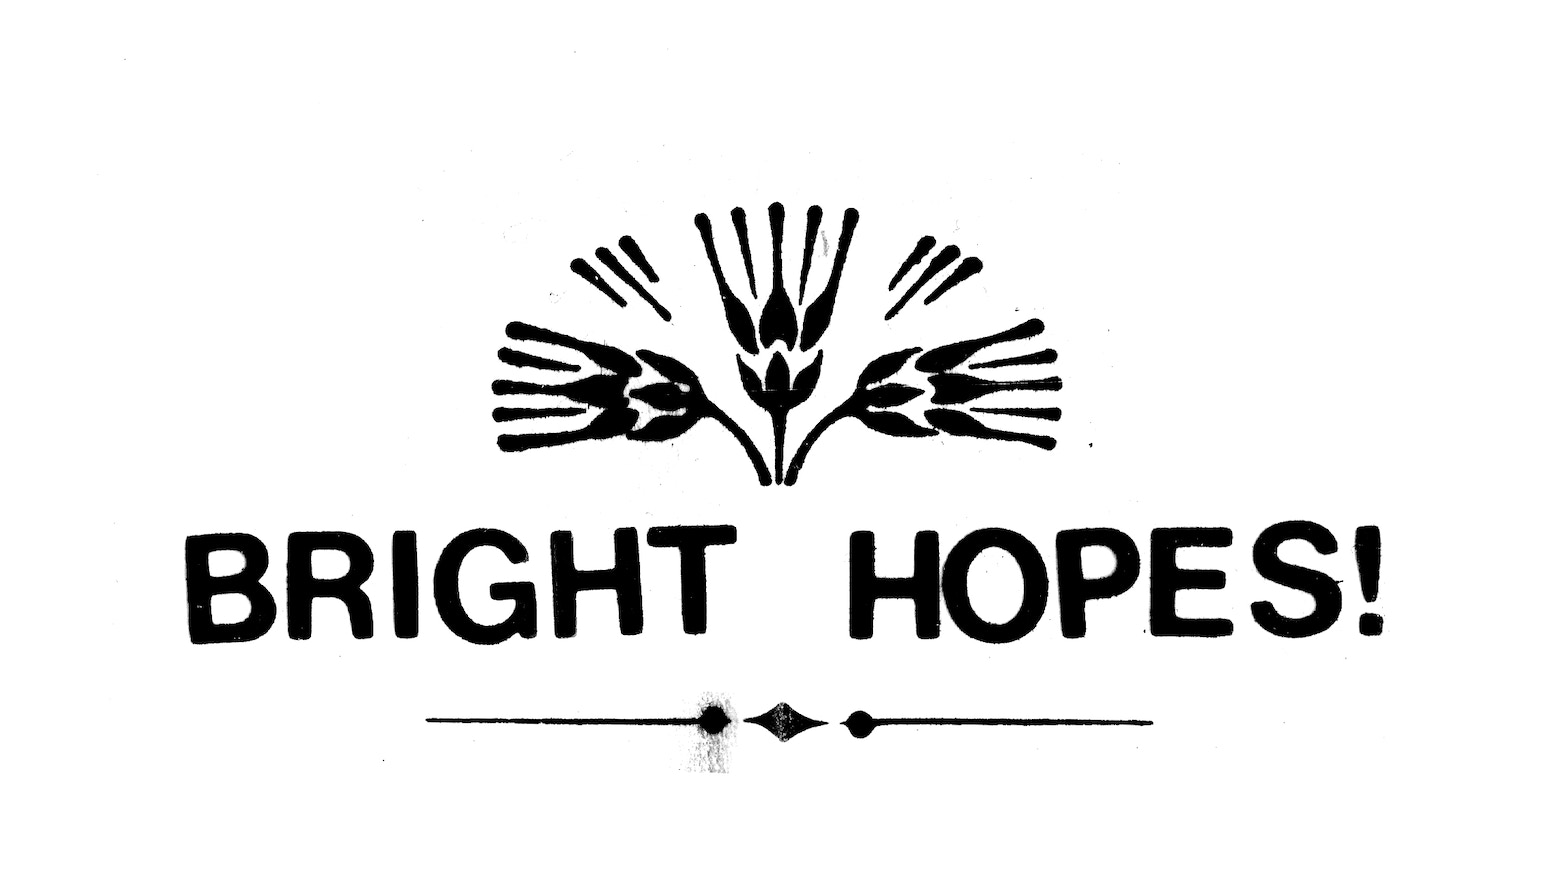 Mike Crawford and his Secret Siblings have recorded a new album called Bright Hopes!